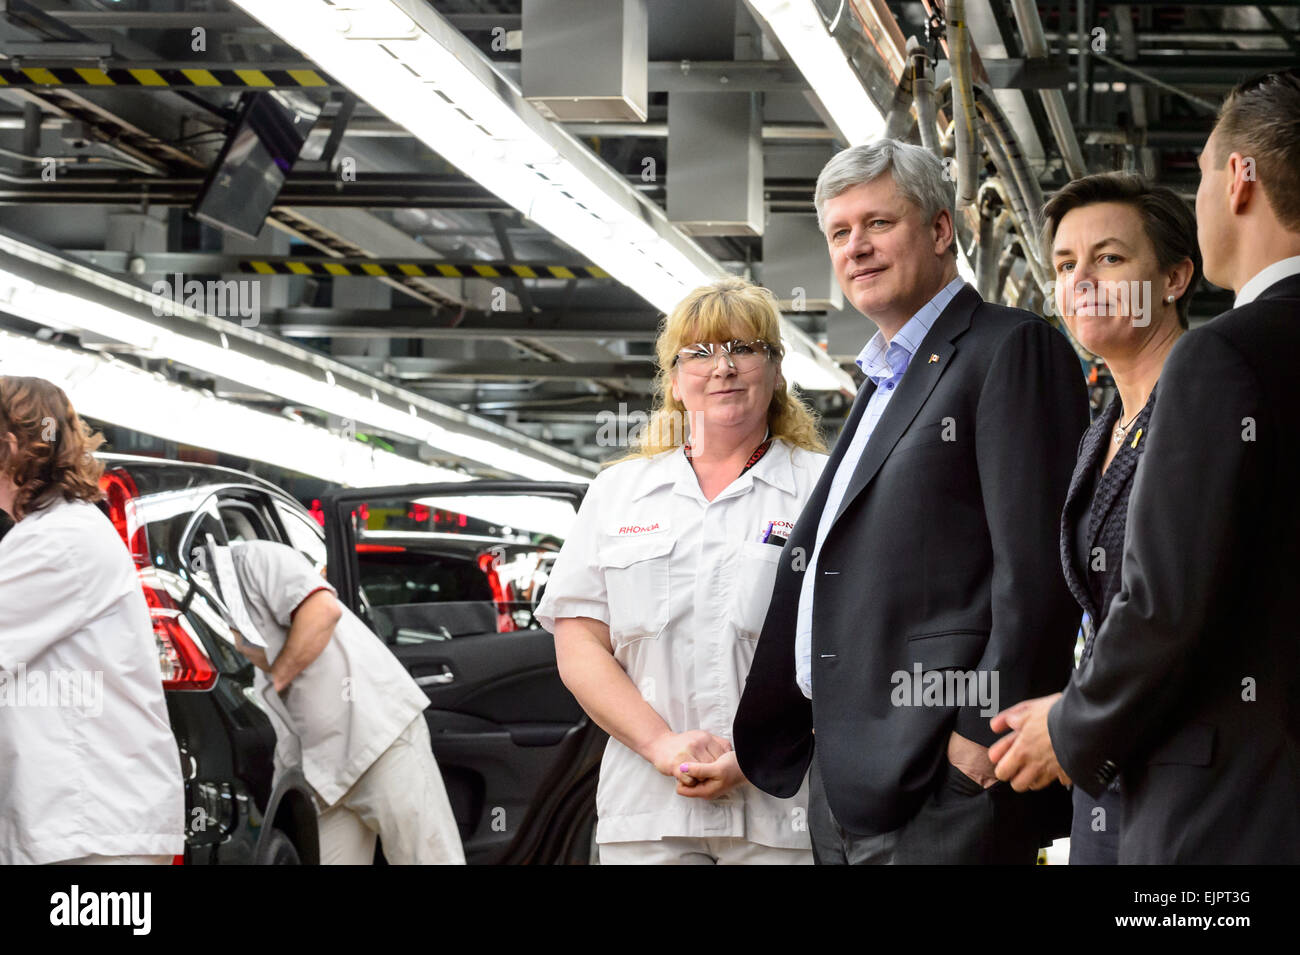 Alliston, CAN., 30 Mar 2015 - Canadian Prime Minister Stephen Harper was joined by Kellie Leitch, Minister of Labour - Stock Image